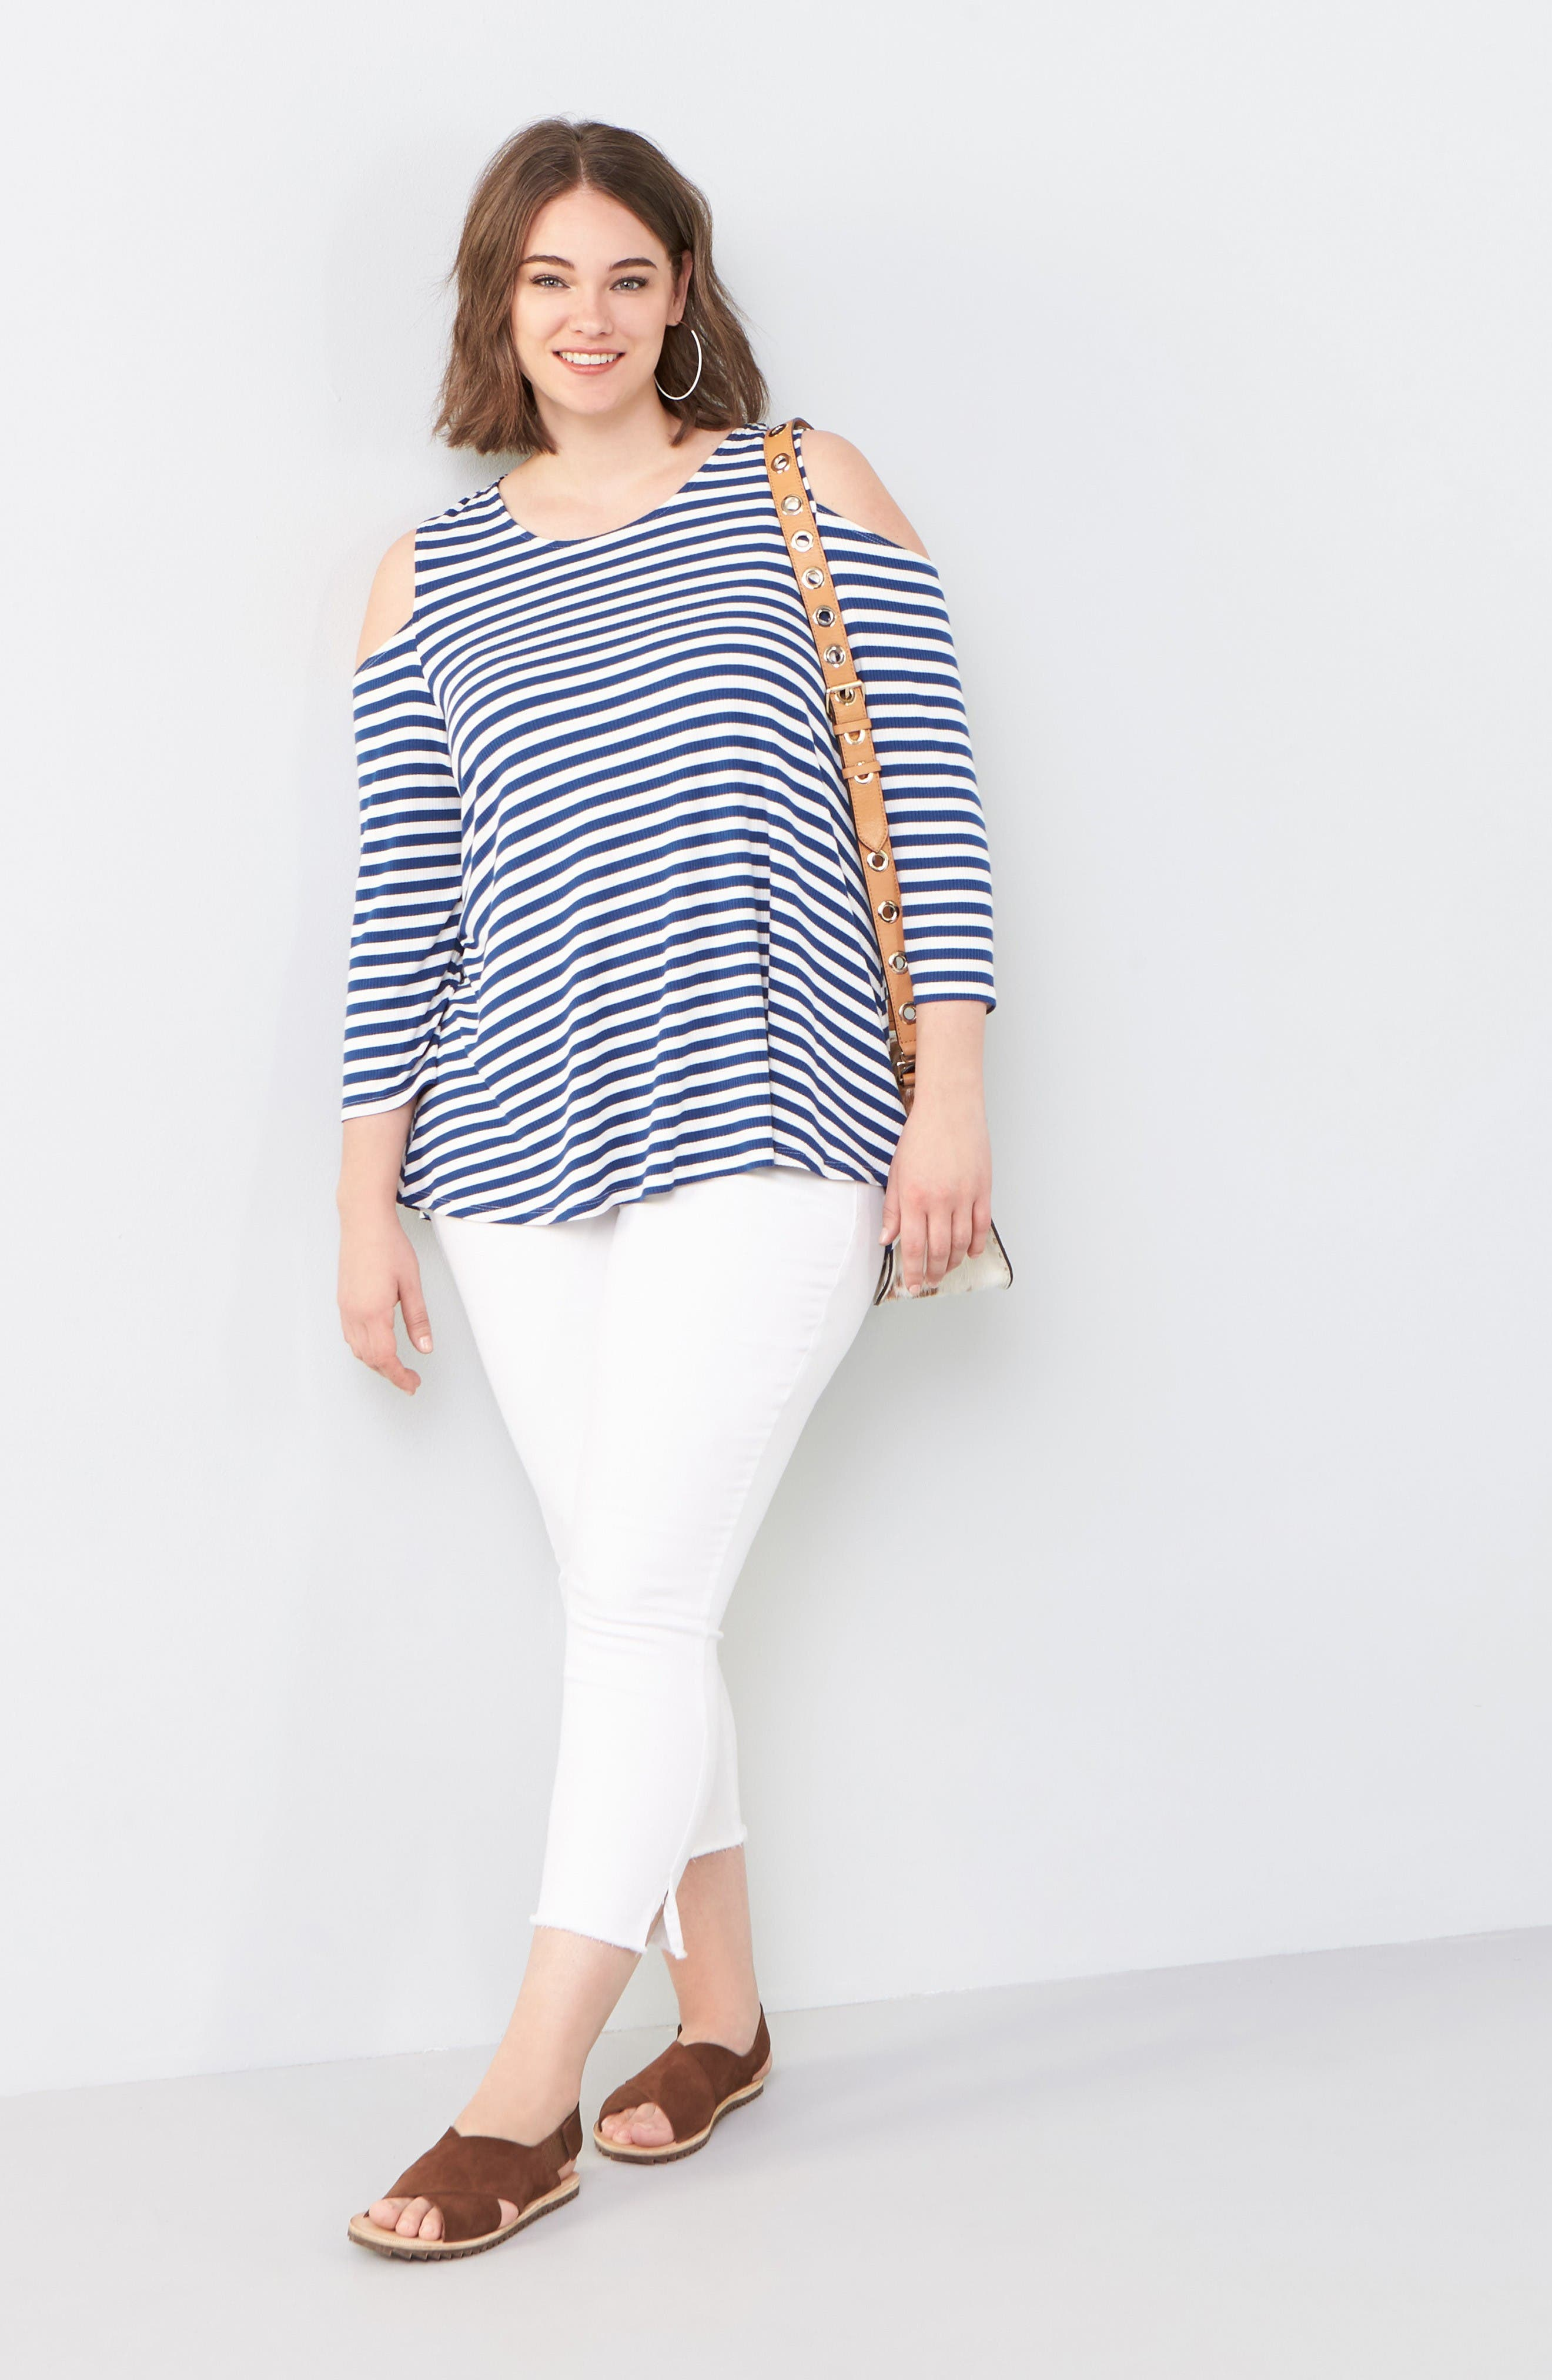 Bobeau Top & SLINK Jeans Skinny Jeans Outfit with Accessories (Plus Size)